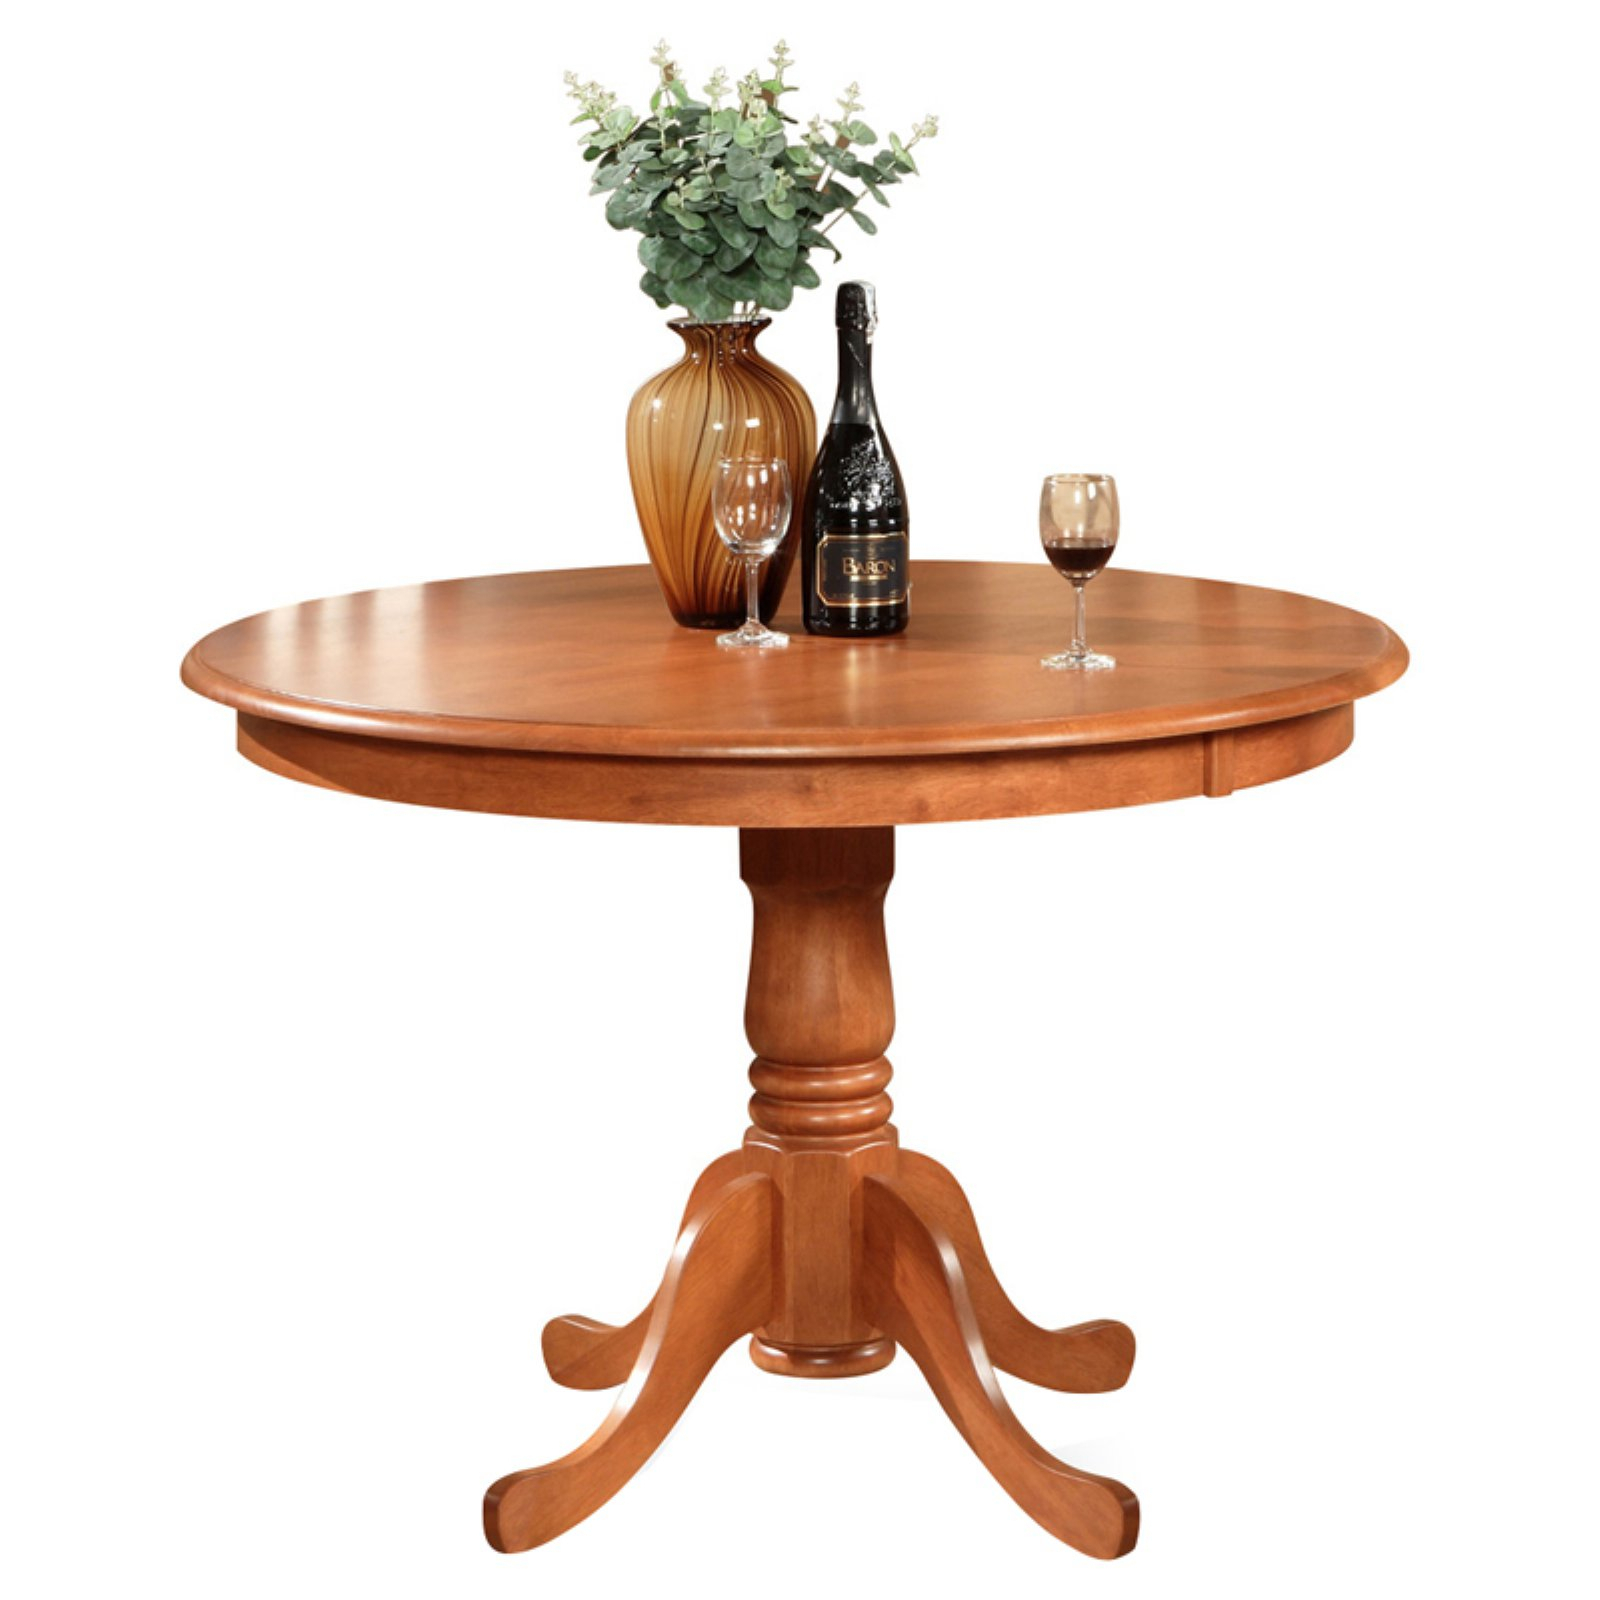 East West Furniture Hartland 42 Inch Round Pedestal Dining Pertaining To Current Darbonne 42'' Dining Tables (View 11 of 15)